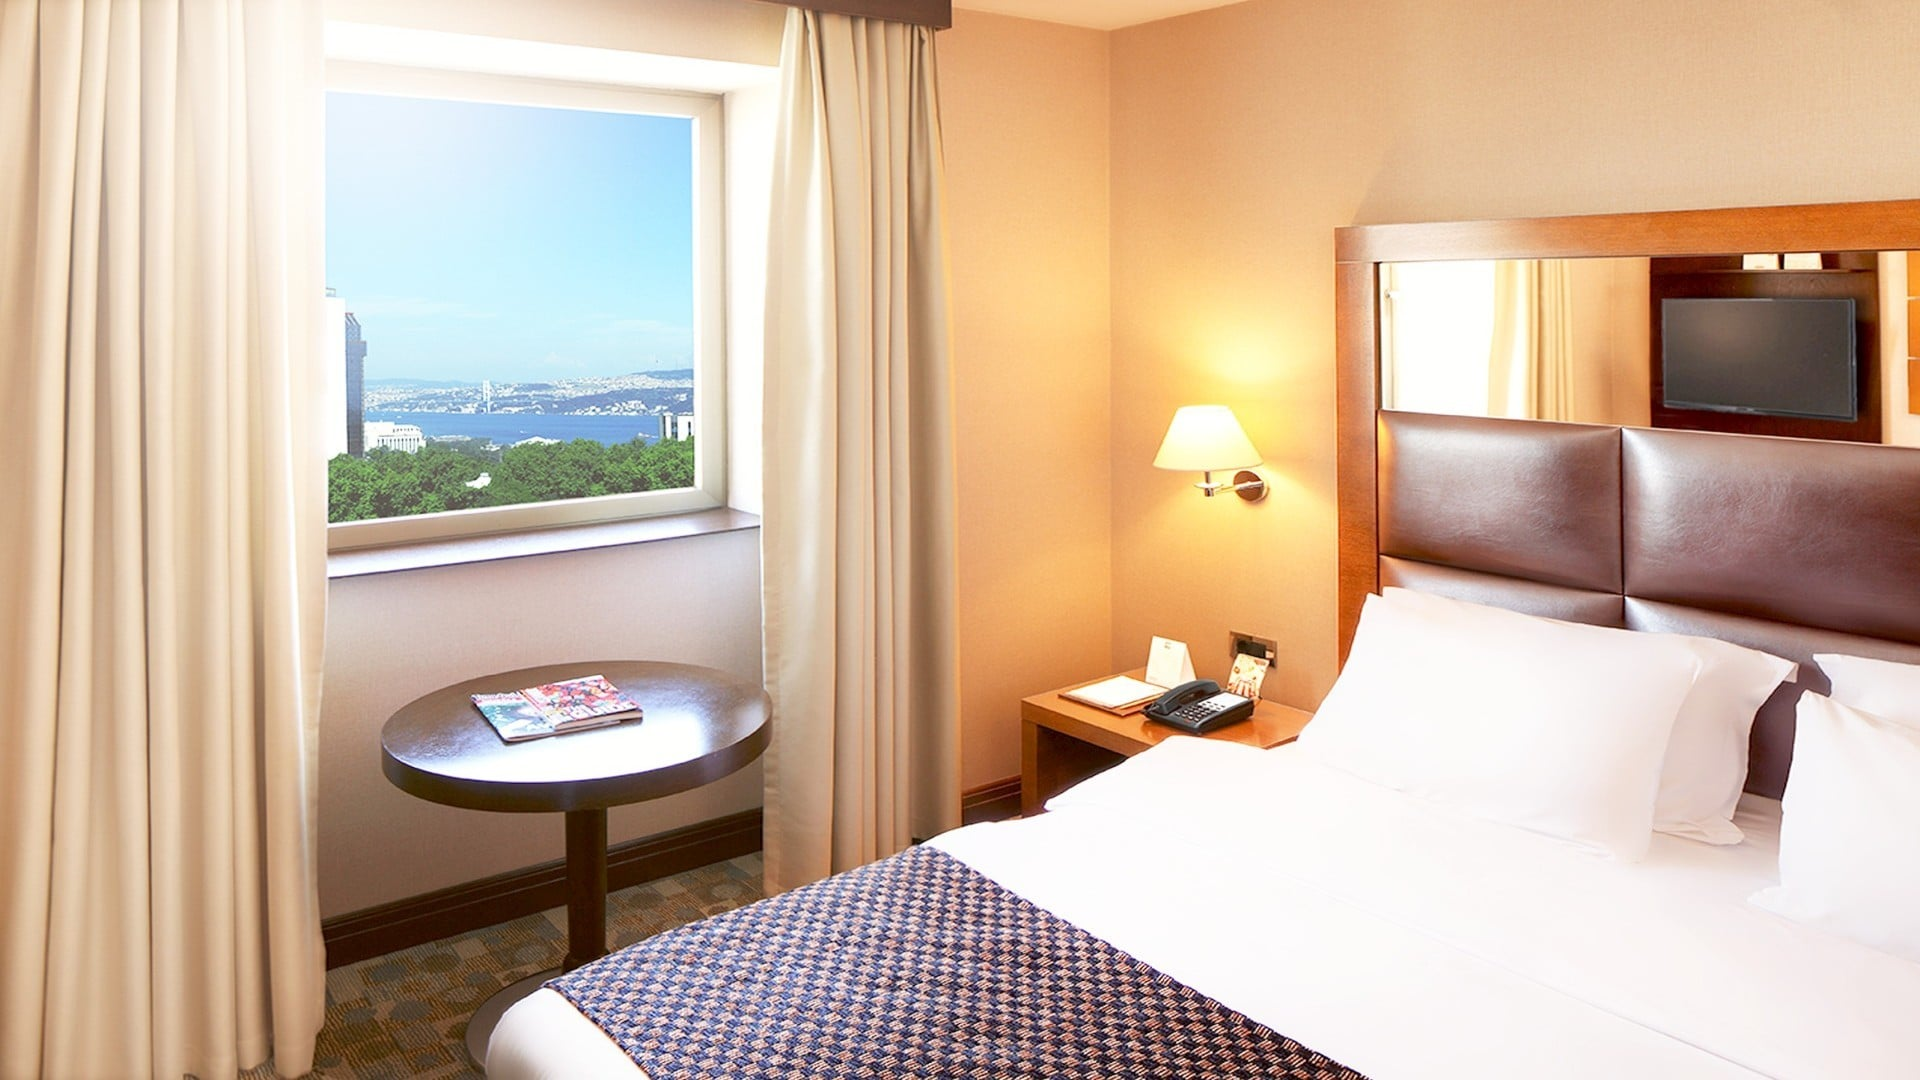 Midtown Hotel Room with sea view